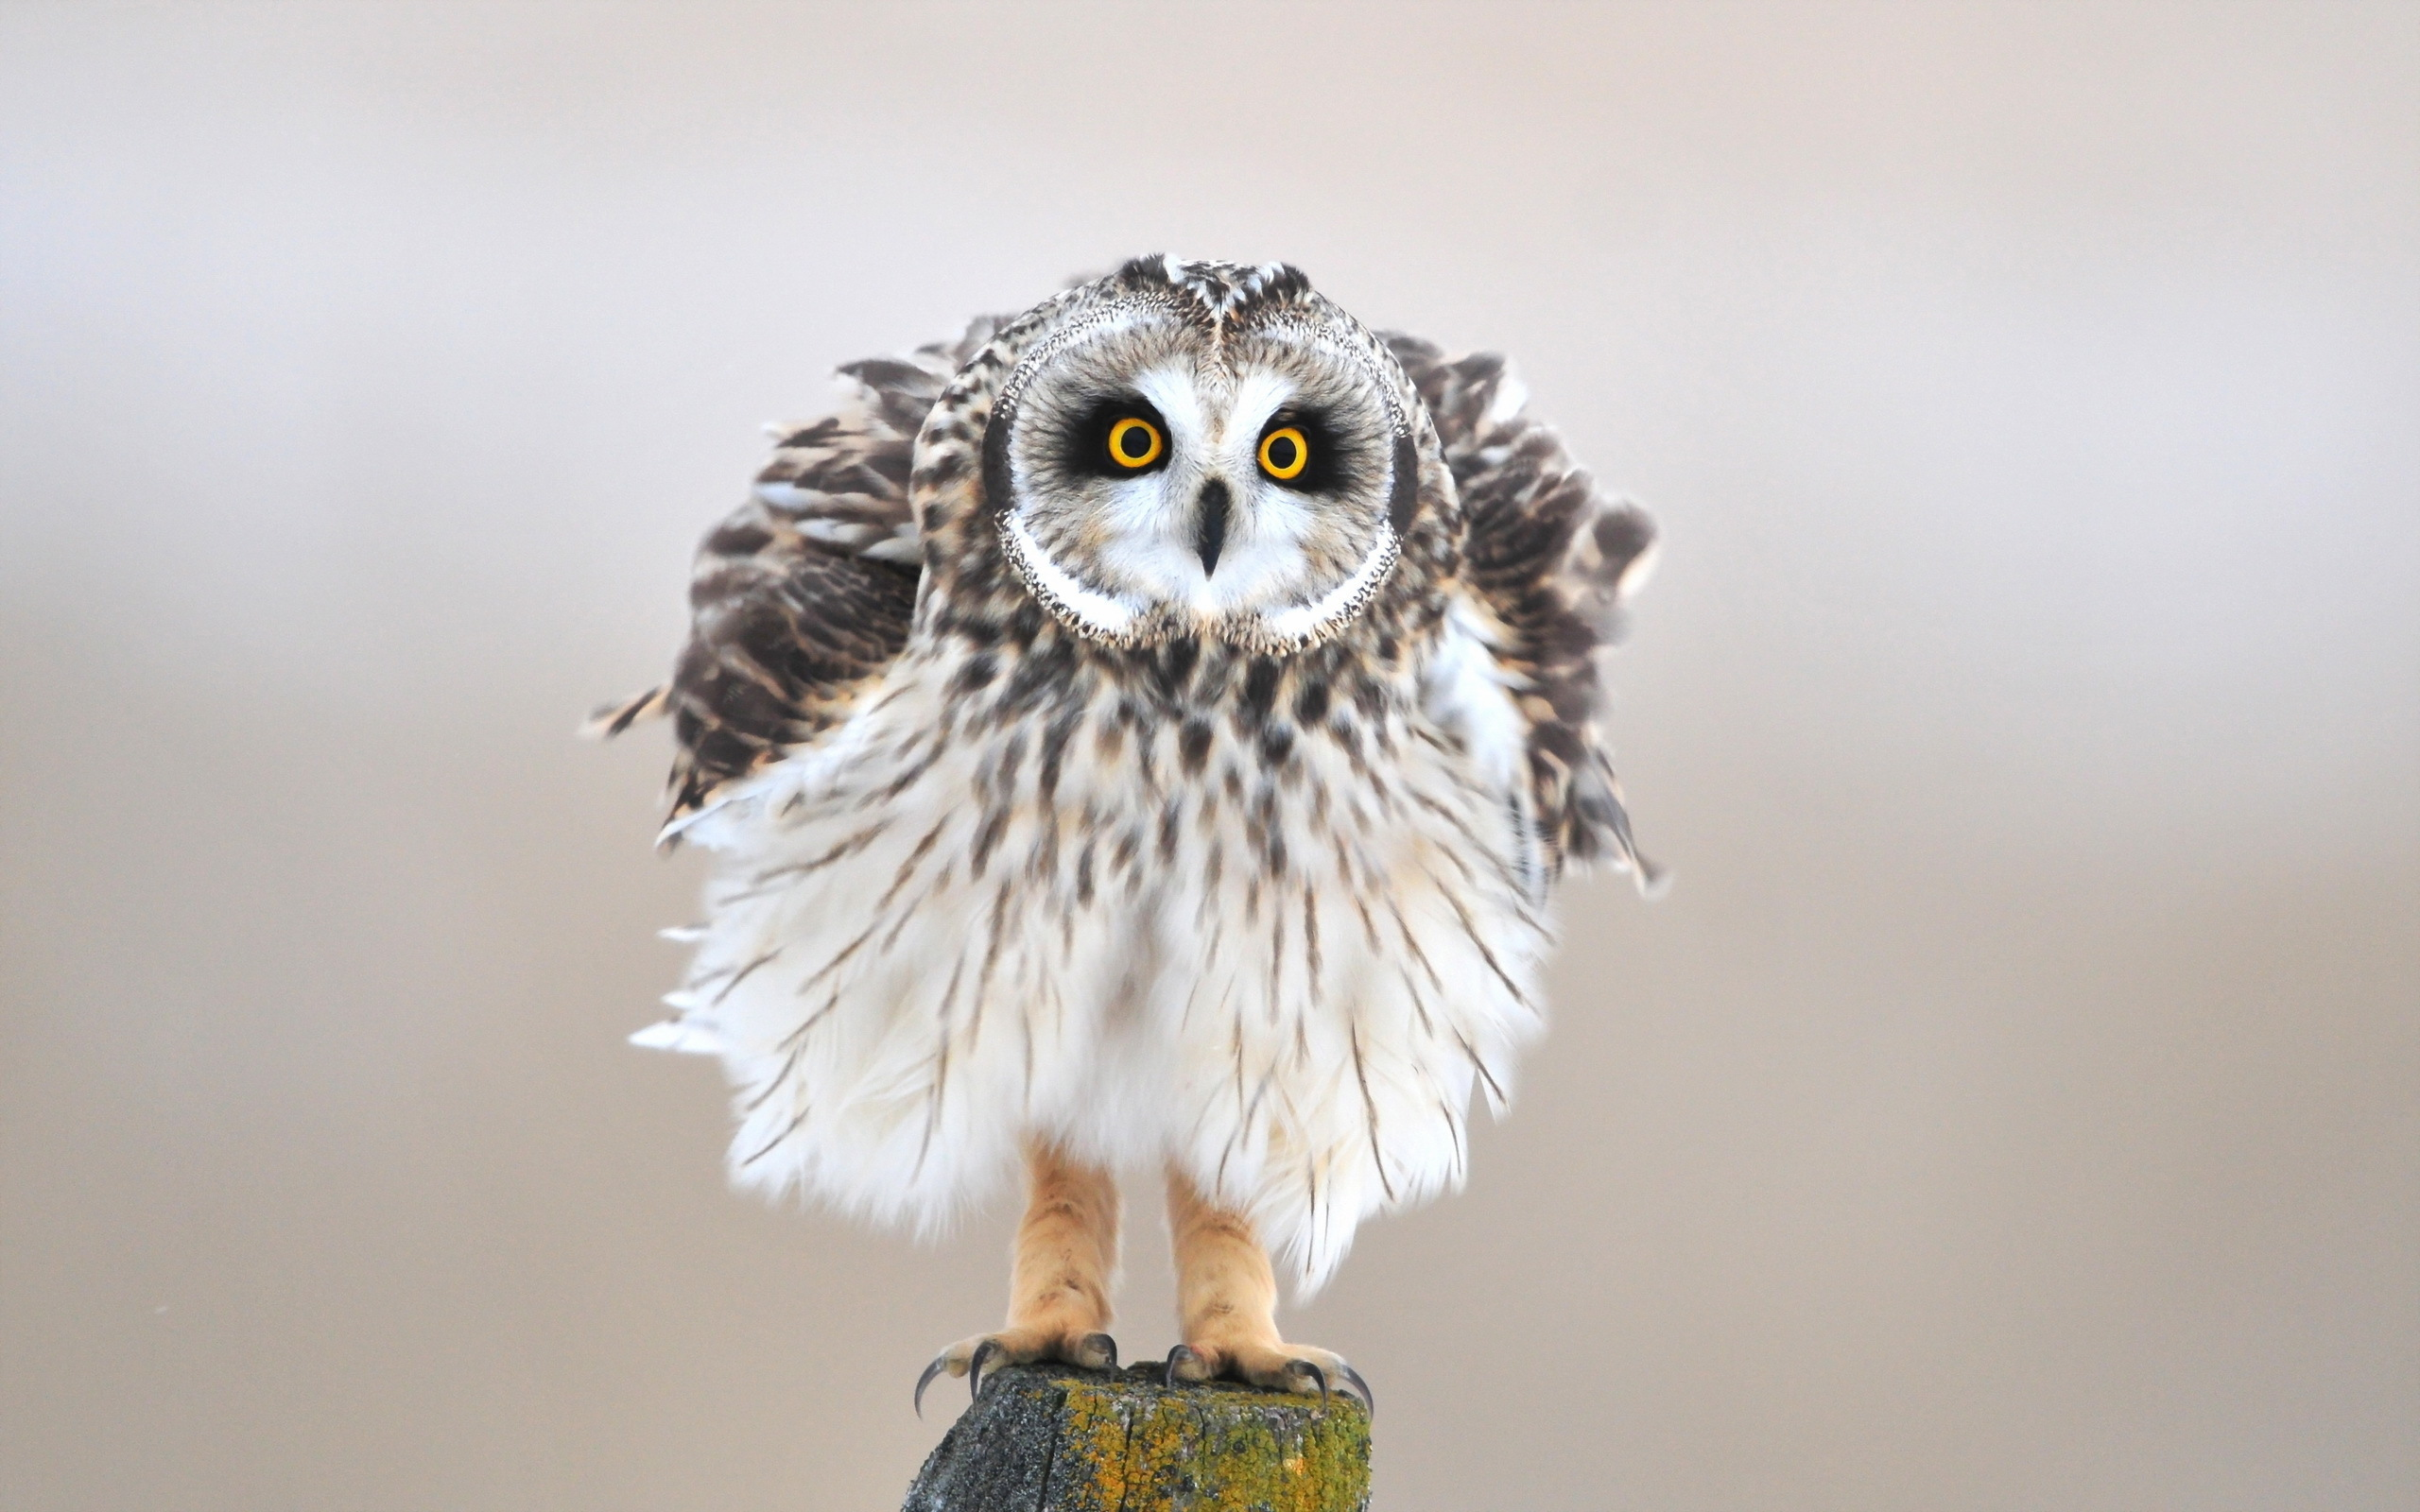 40295 download wallpaper Animals, Birds, Owl screensavers and pictures for free